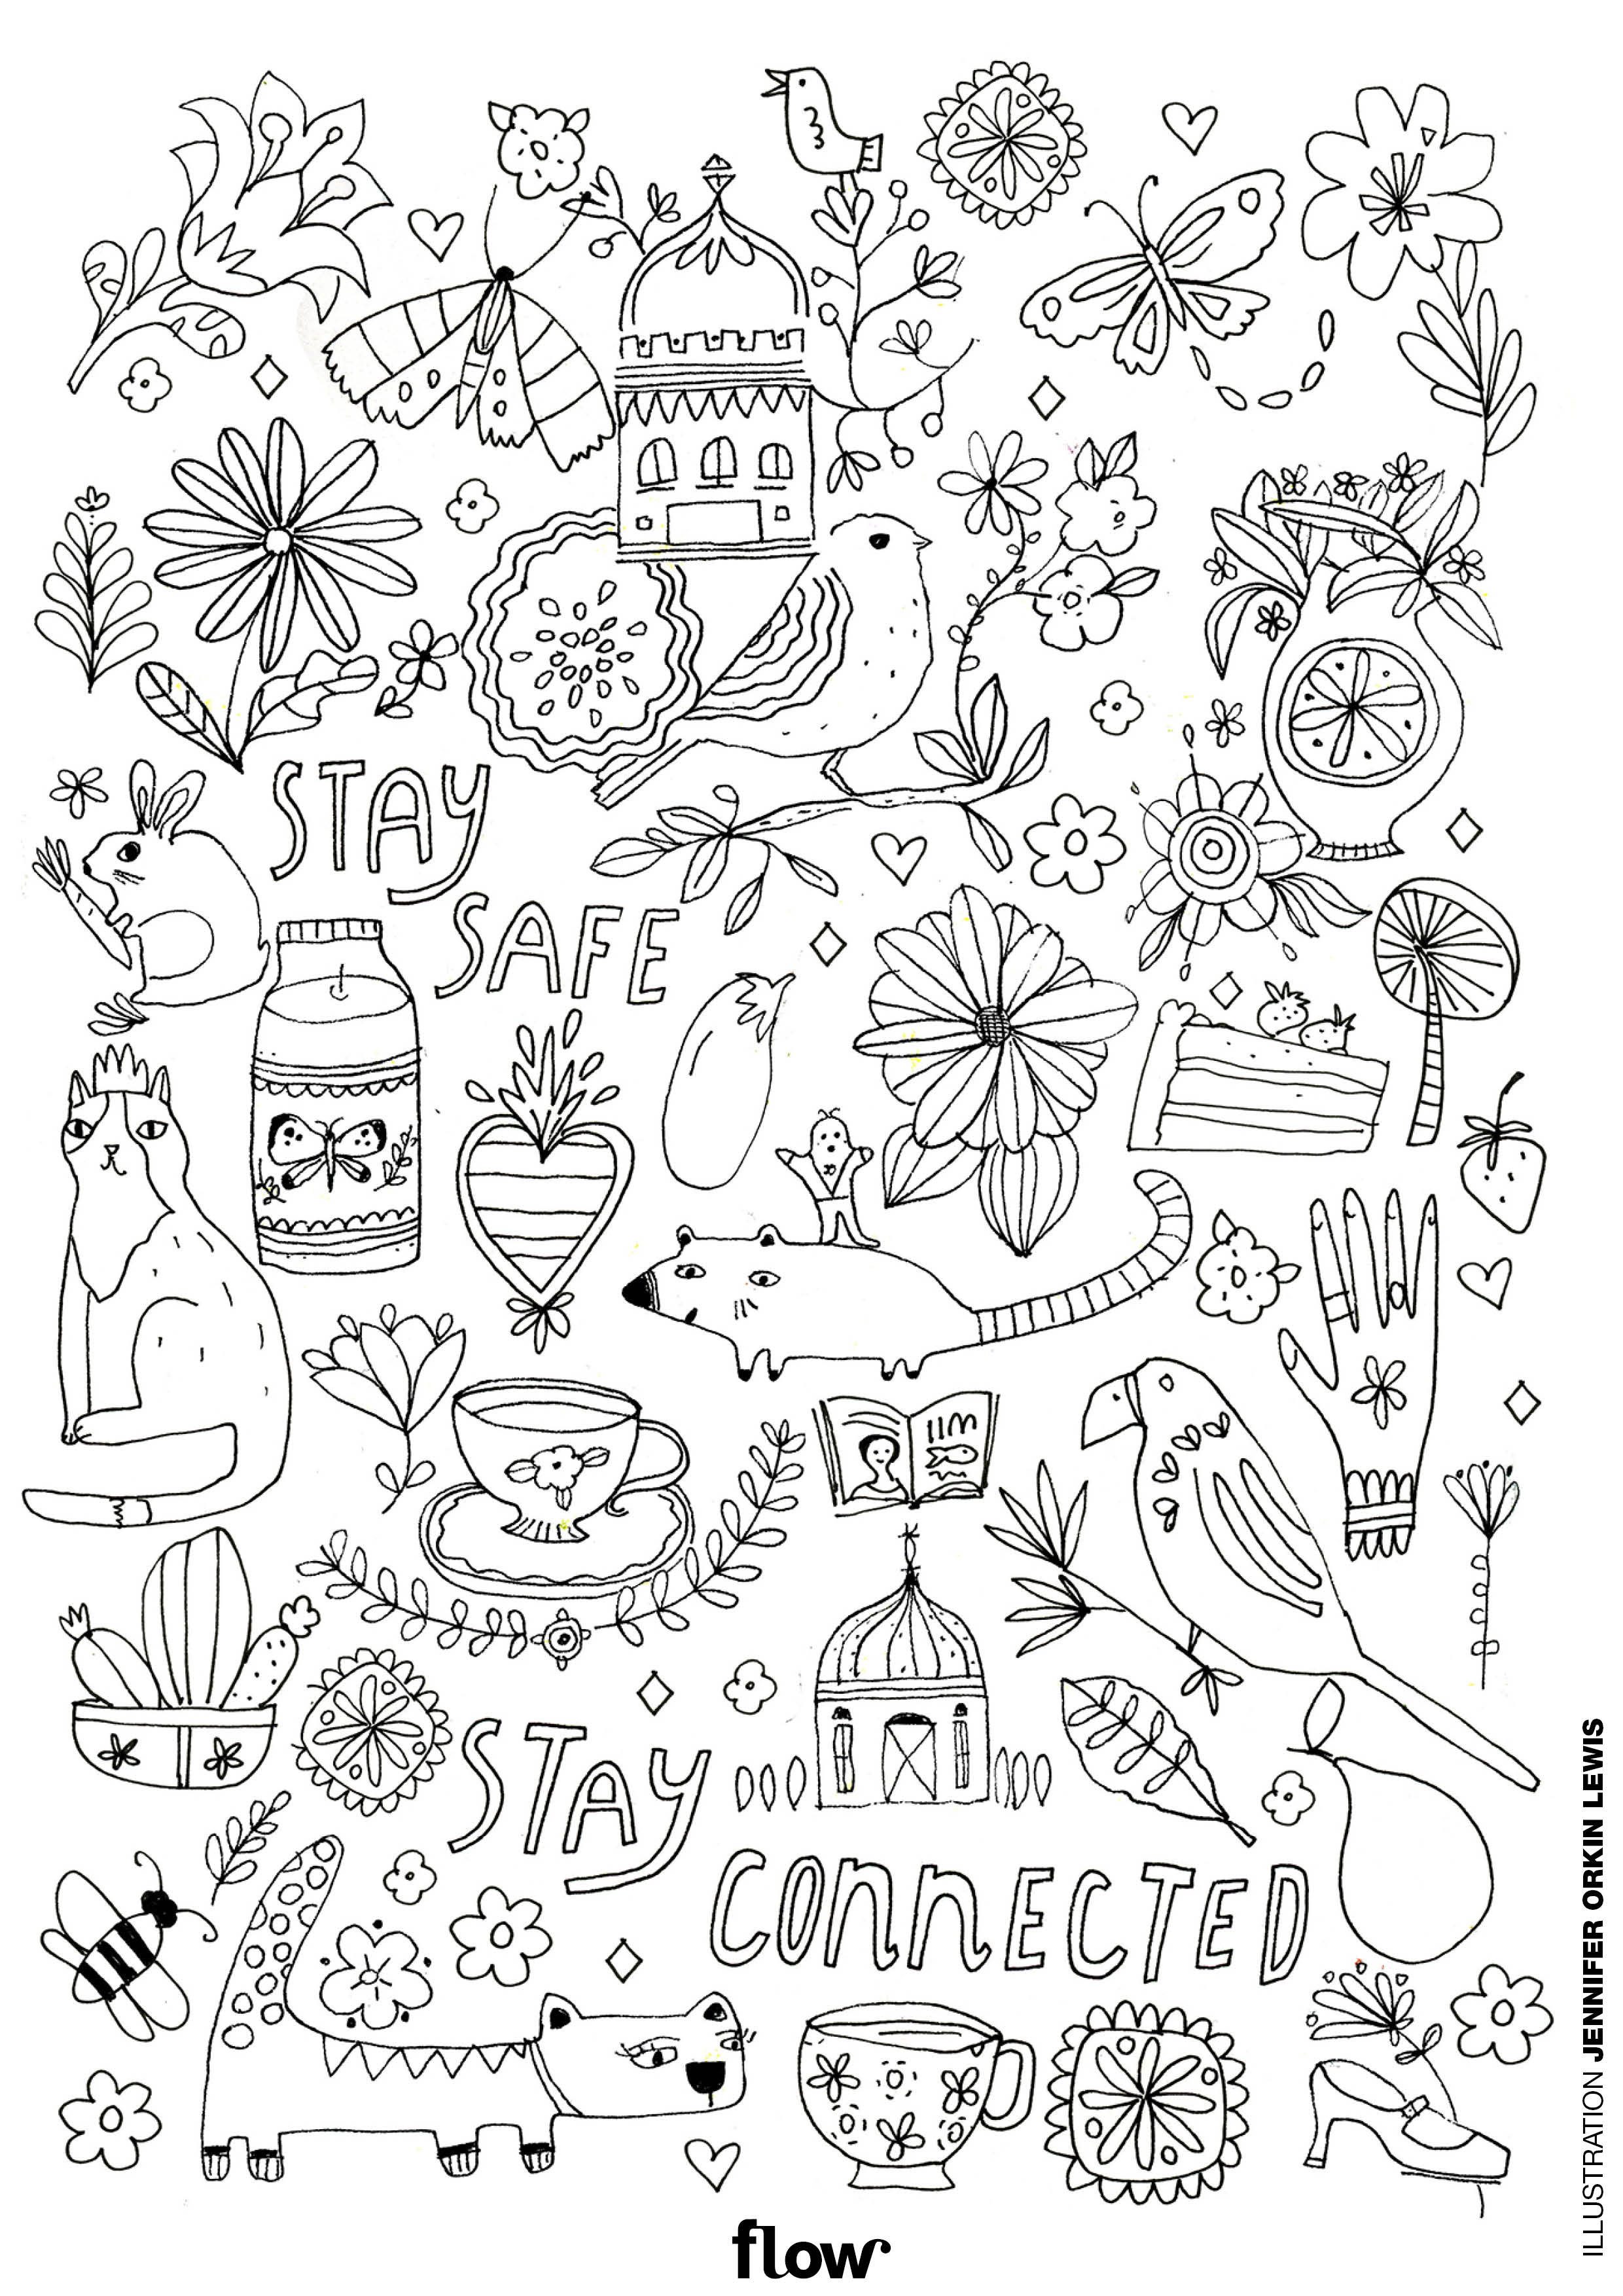 Comforting Coloring Page